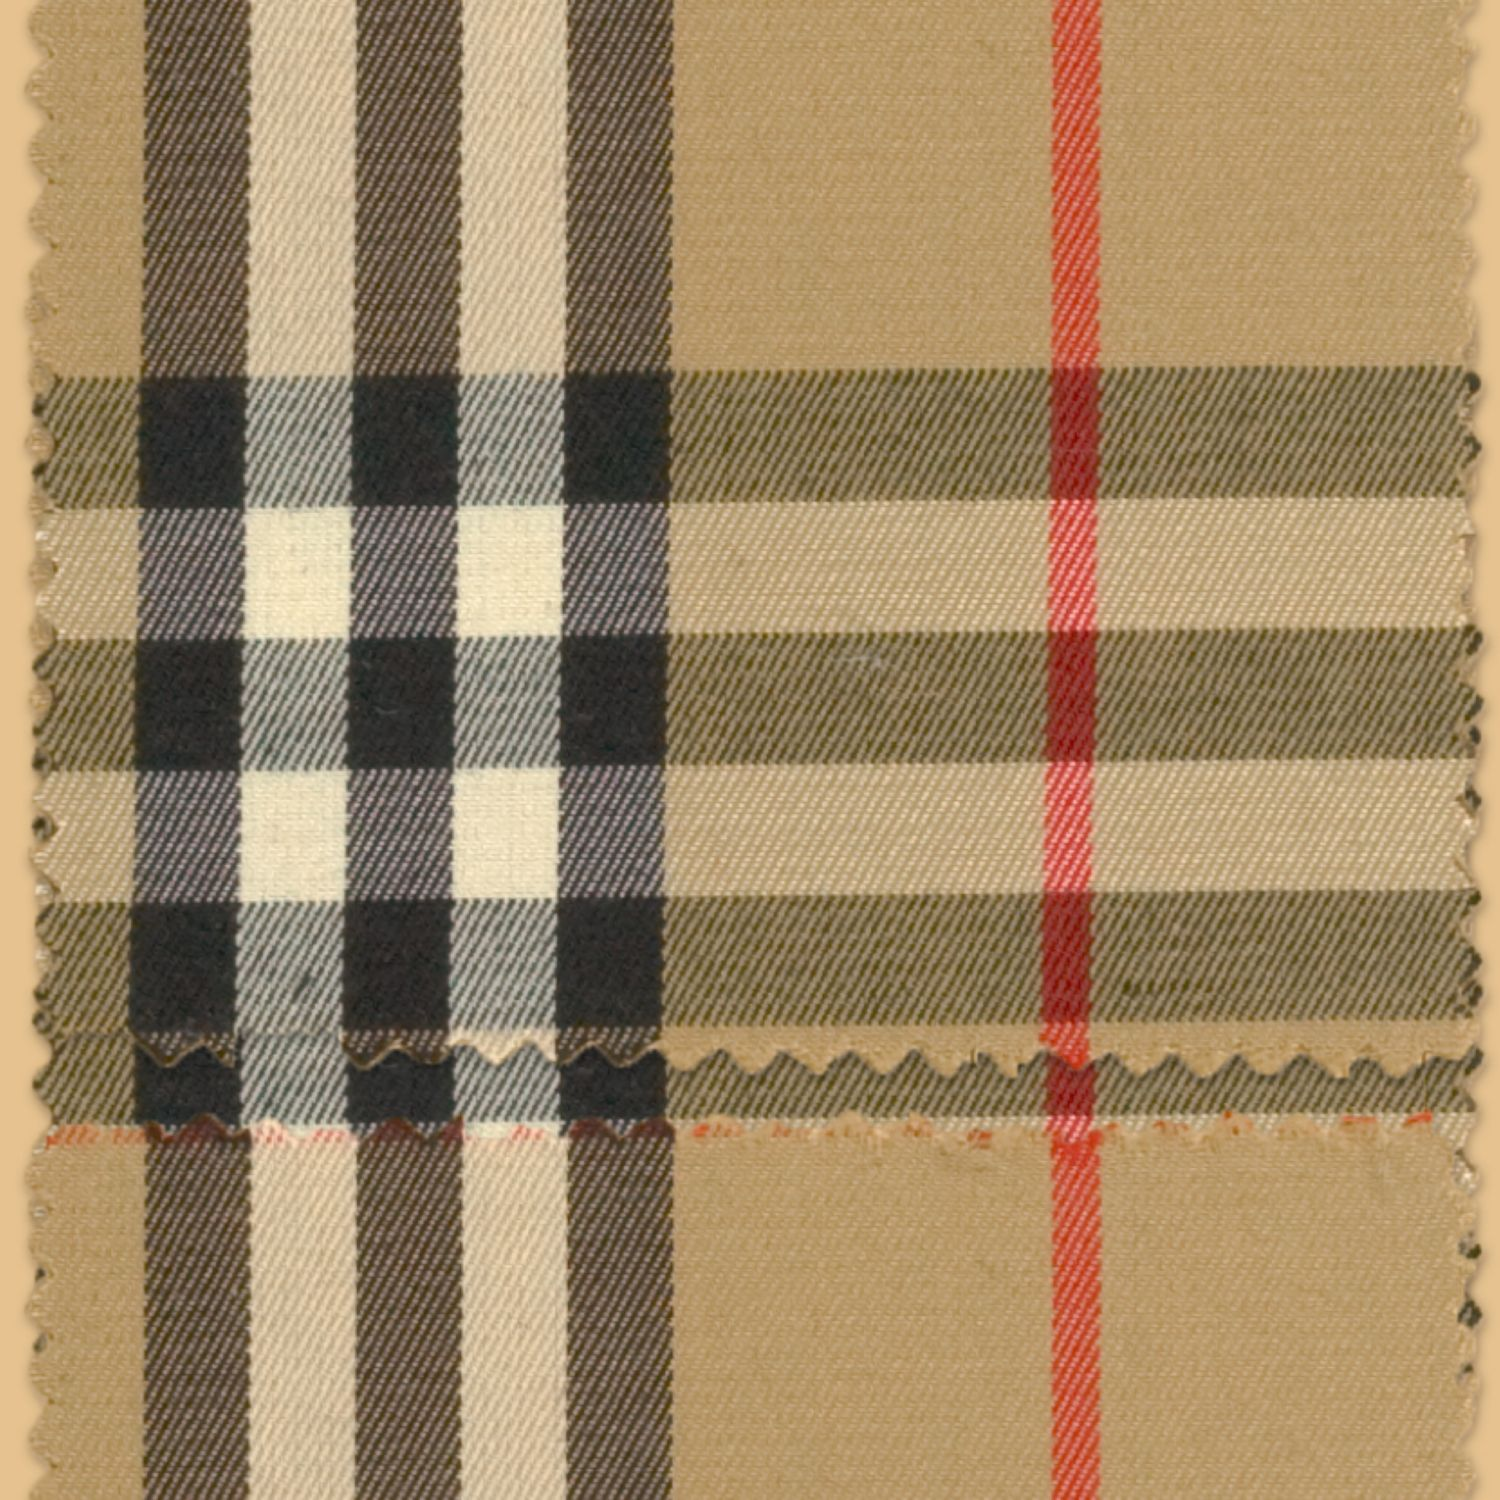 The Burberry check, now registered as a trademark, is introduced as a lining to our rainwear.